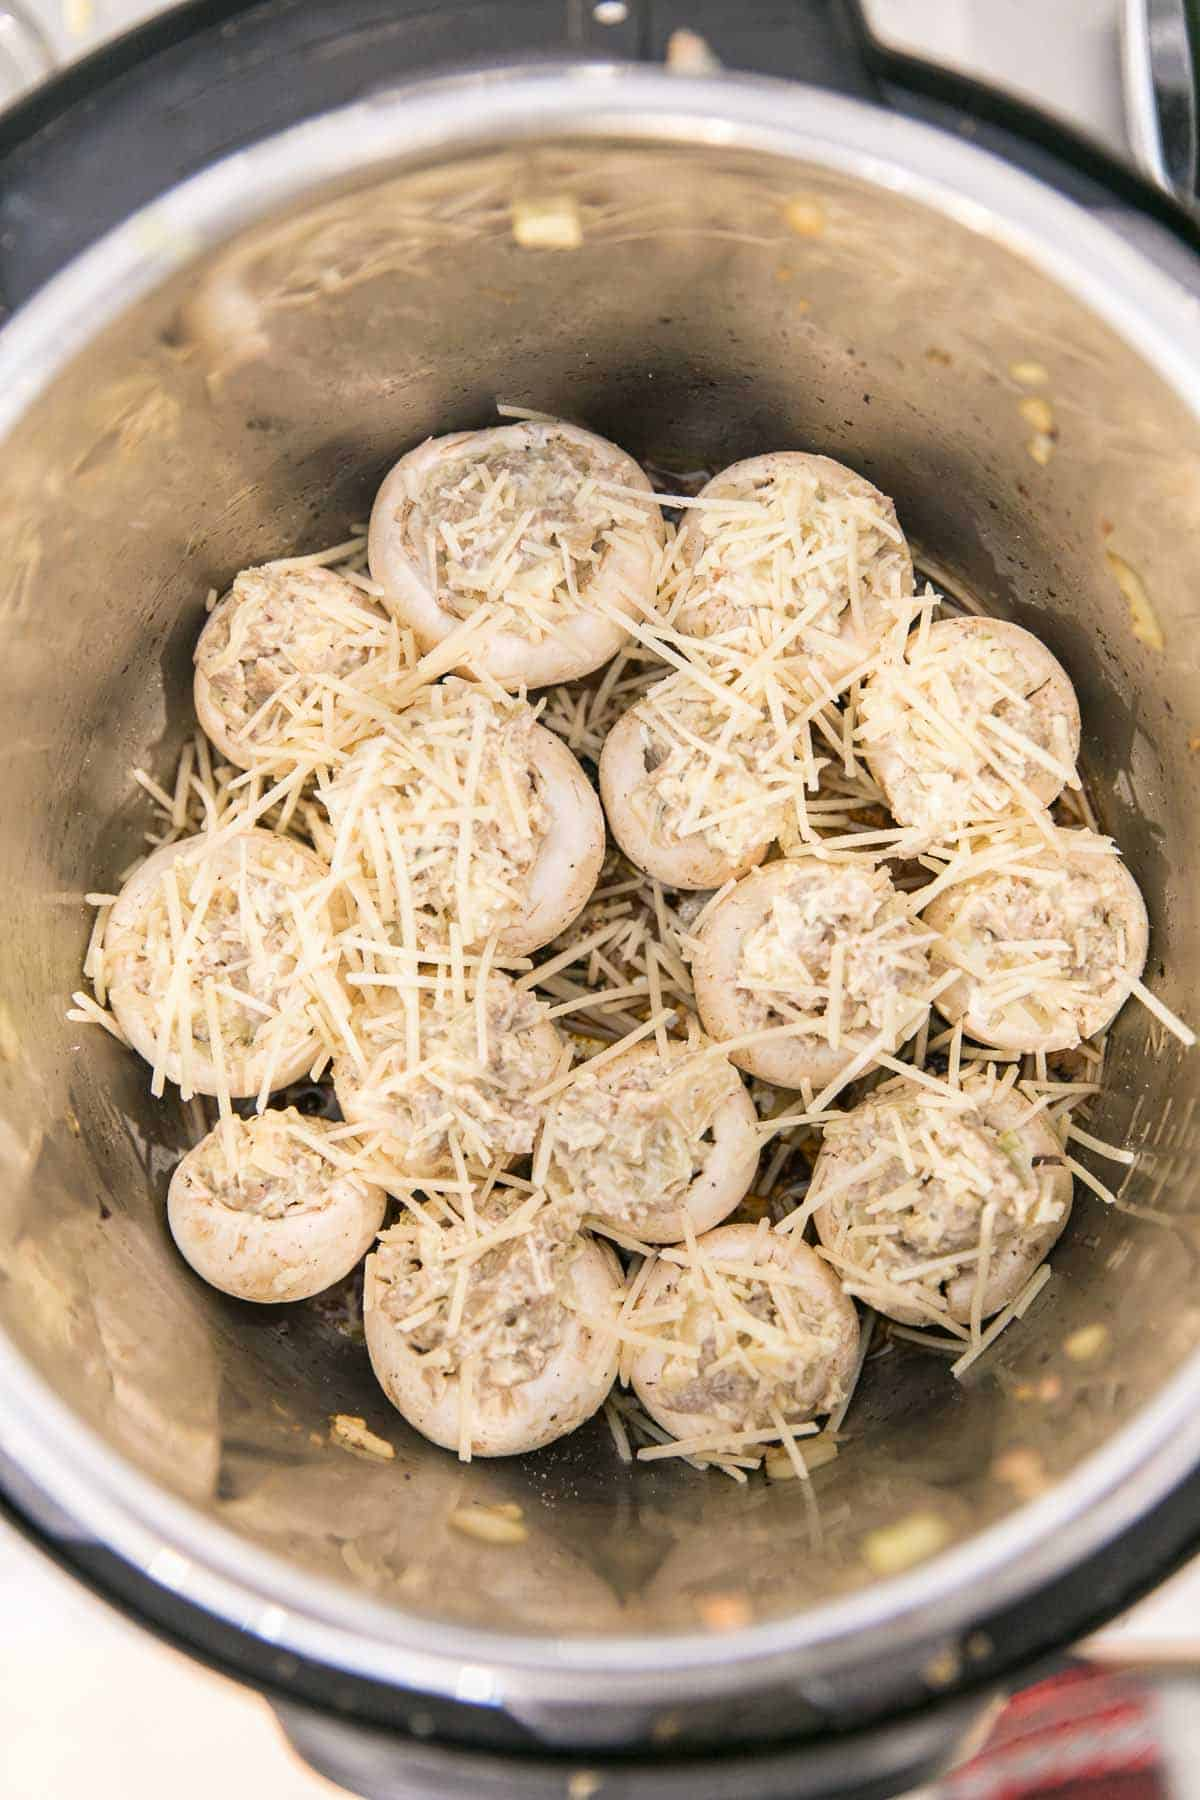 Instant Pot Stuffed Mushrooms: a classic sausage stuffed mushroom recipe, updated for your pressure cooker. Leave the oven free for dessert and make stuffed mushrooms right in the Instant Pot with fewer dishes, less time, and more flavor. #bunsenburmerbakery #partyfood #superbowlparty #appetizers #ad